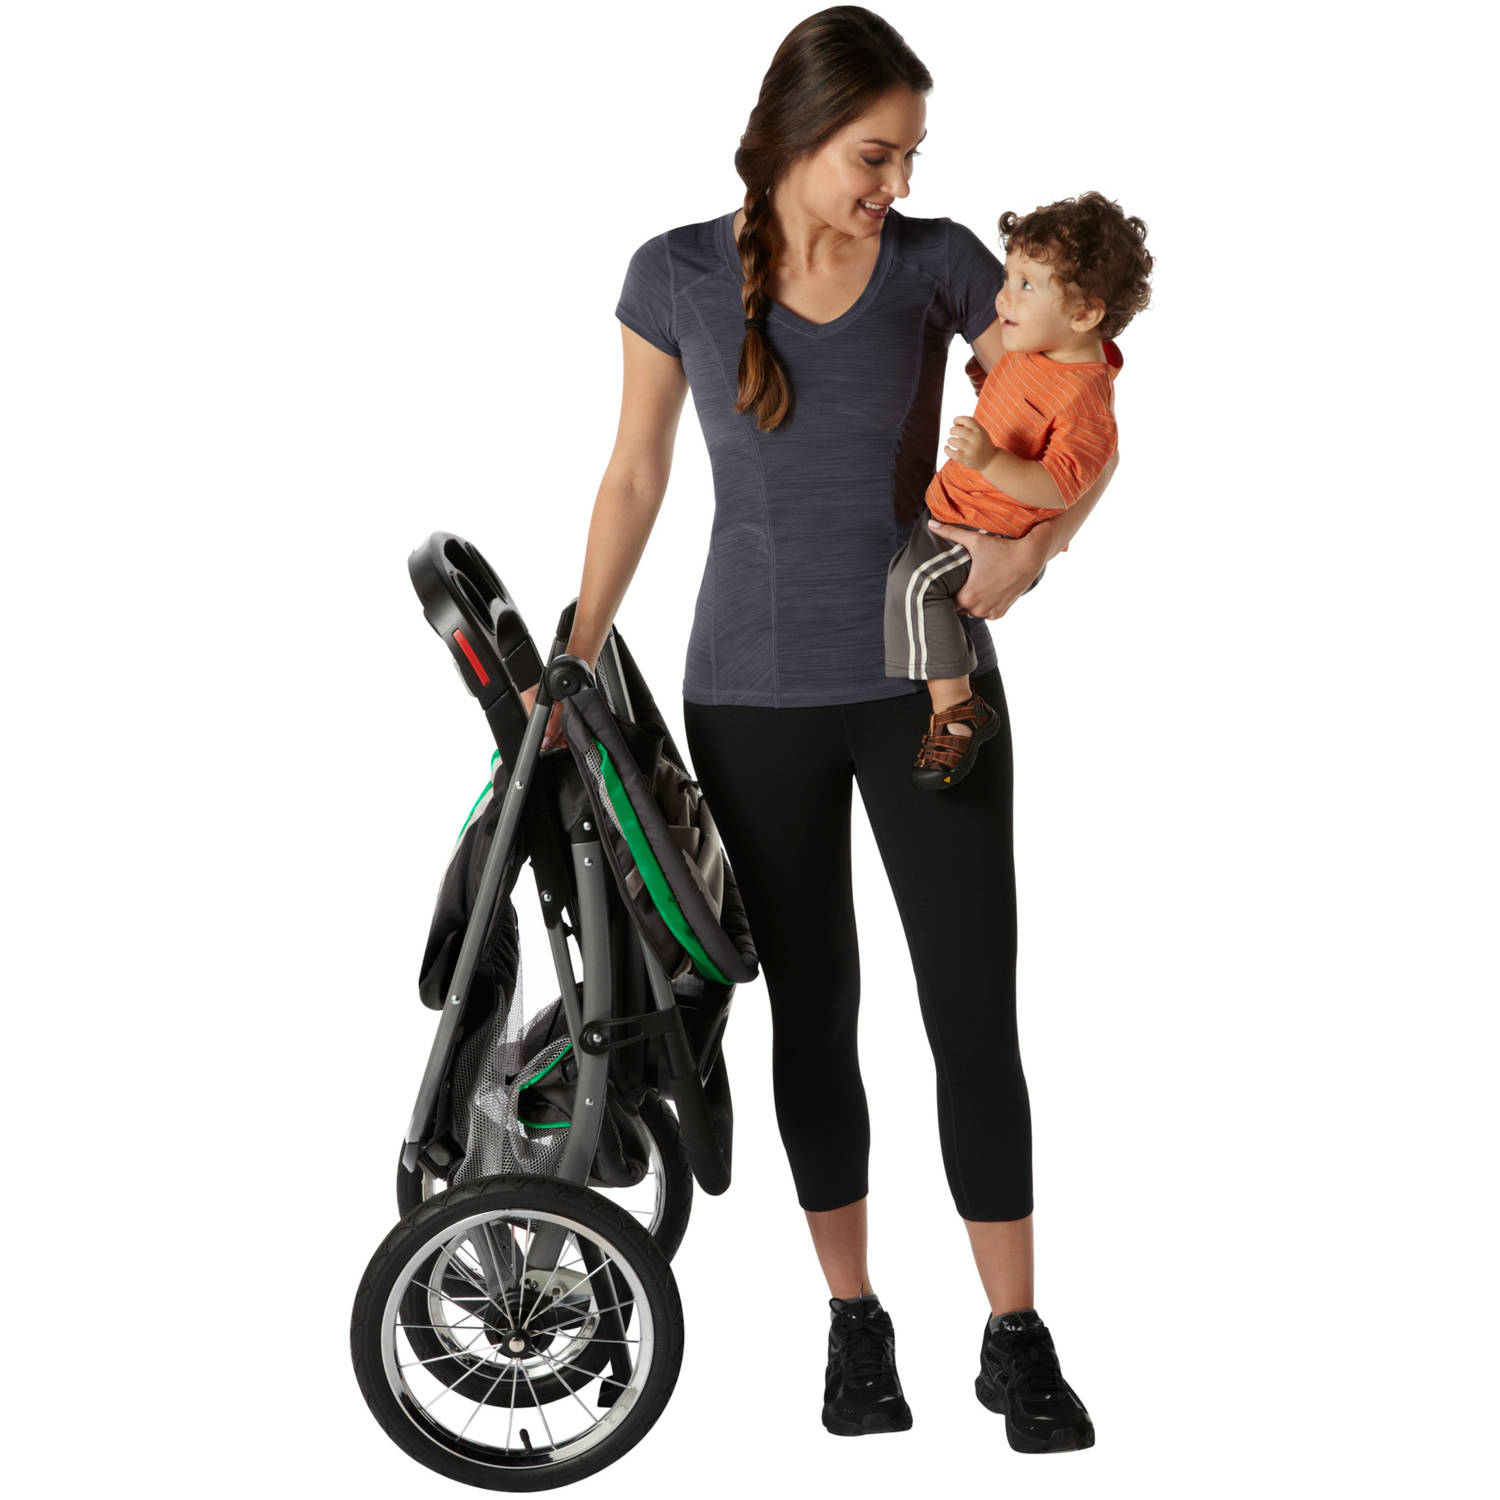 8be2e6b3d Graco Fastaction Fold Jogger Click Connect Travel System - Chili Red -  Walmart.com